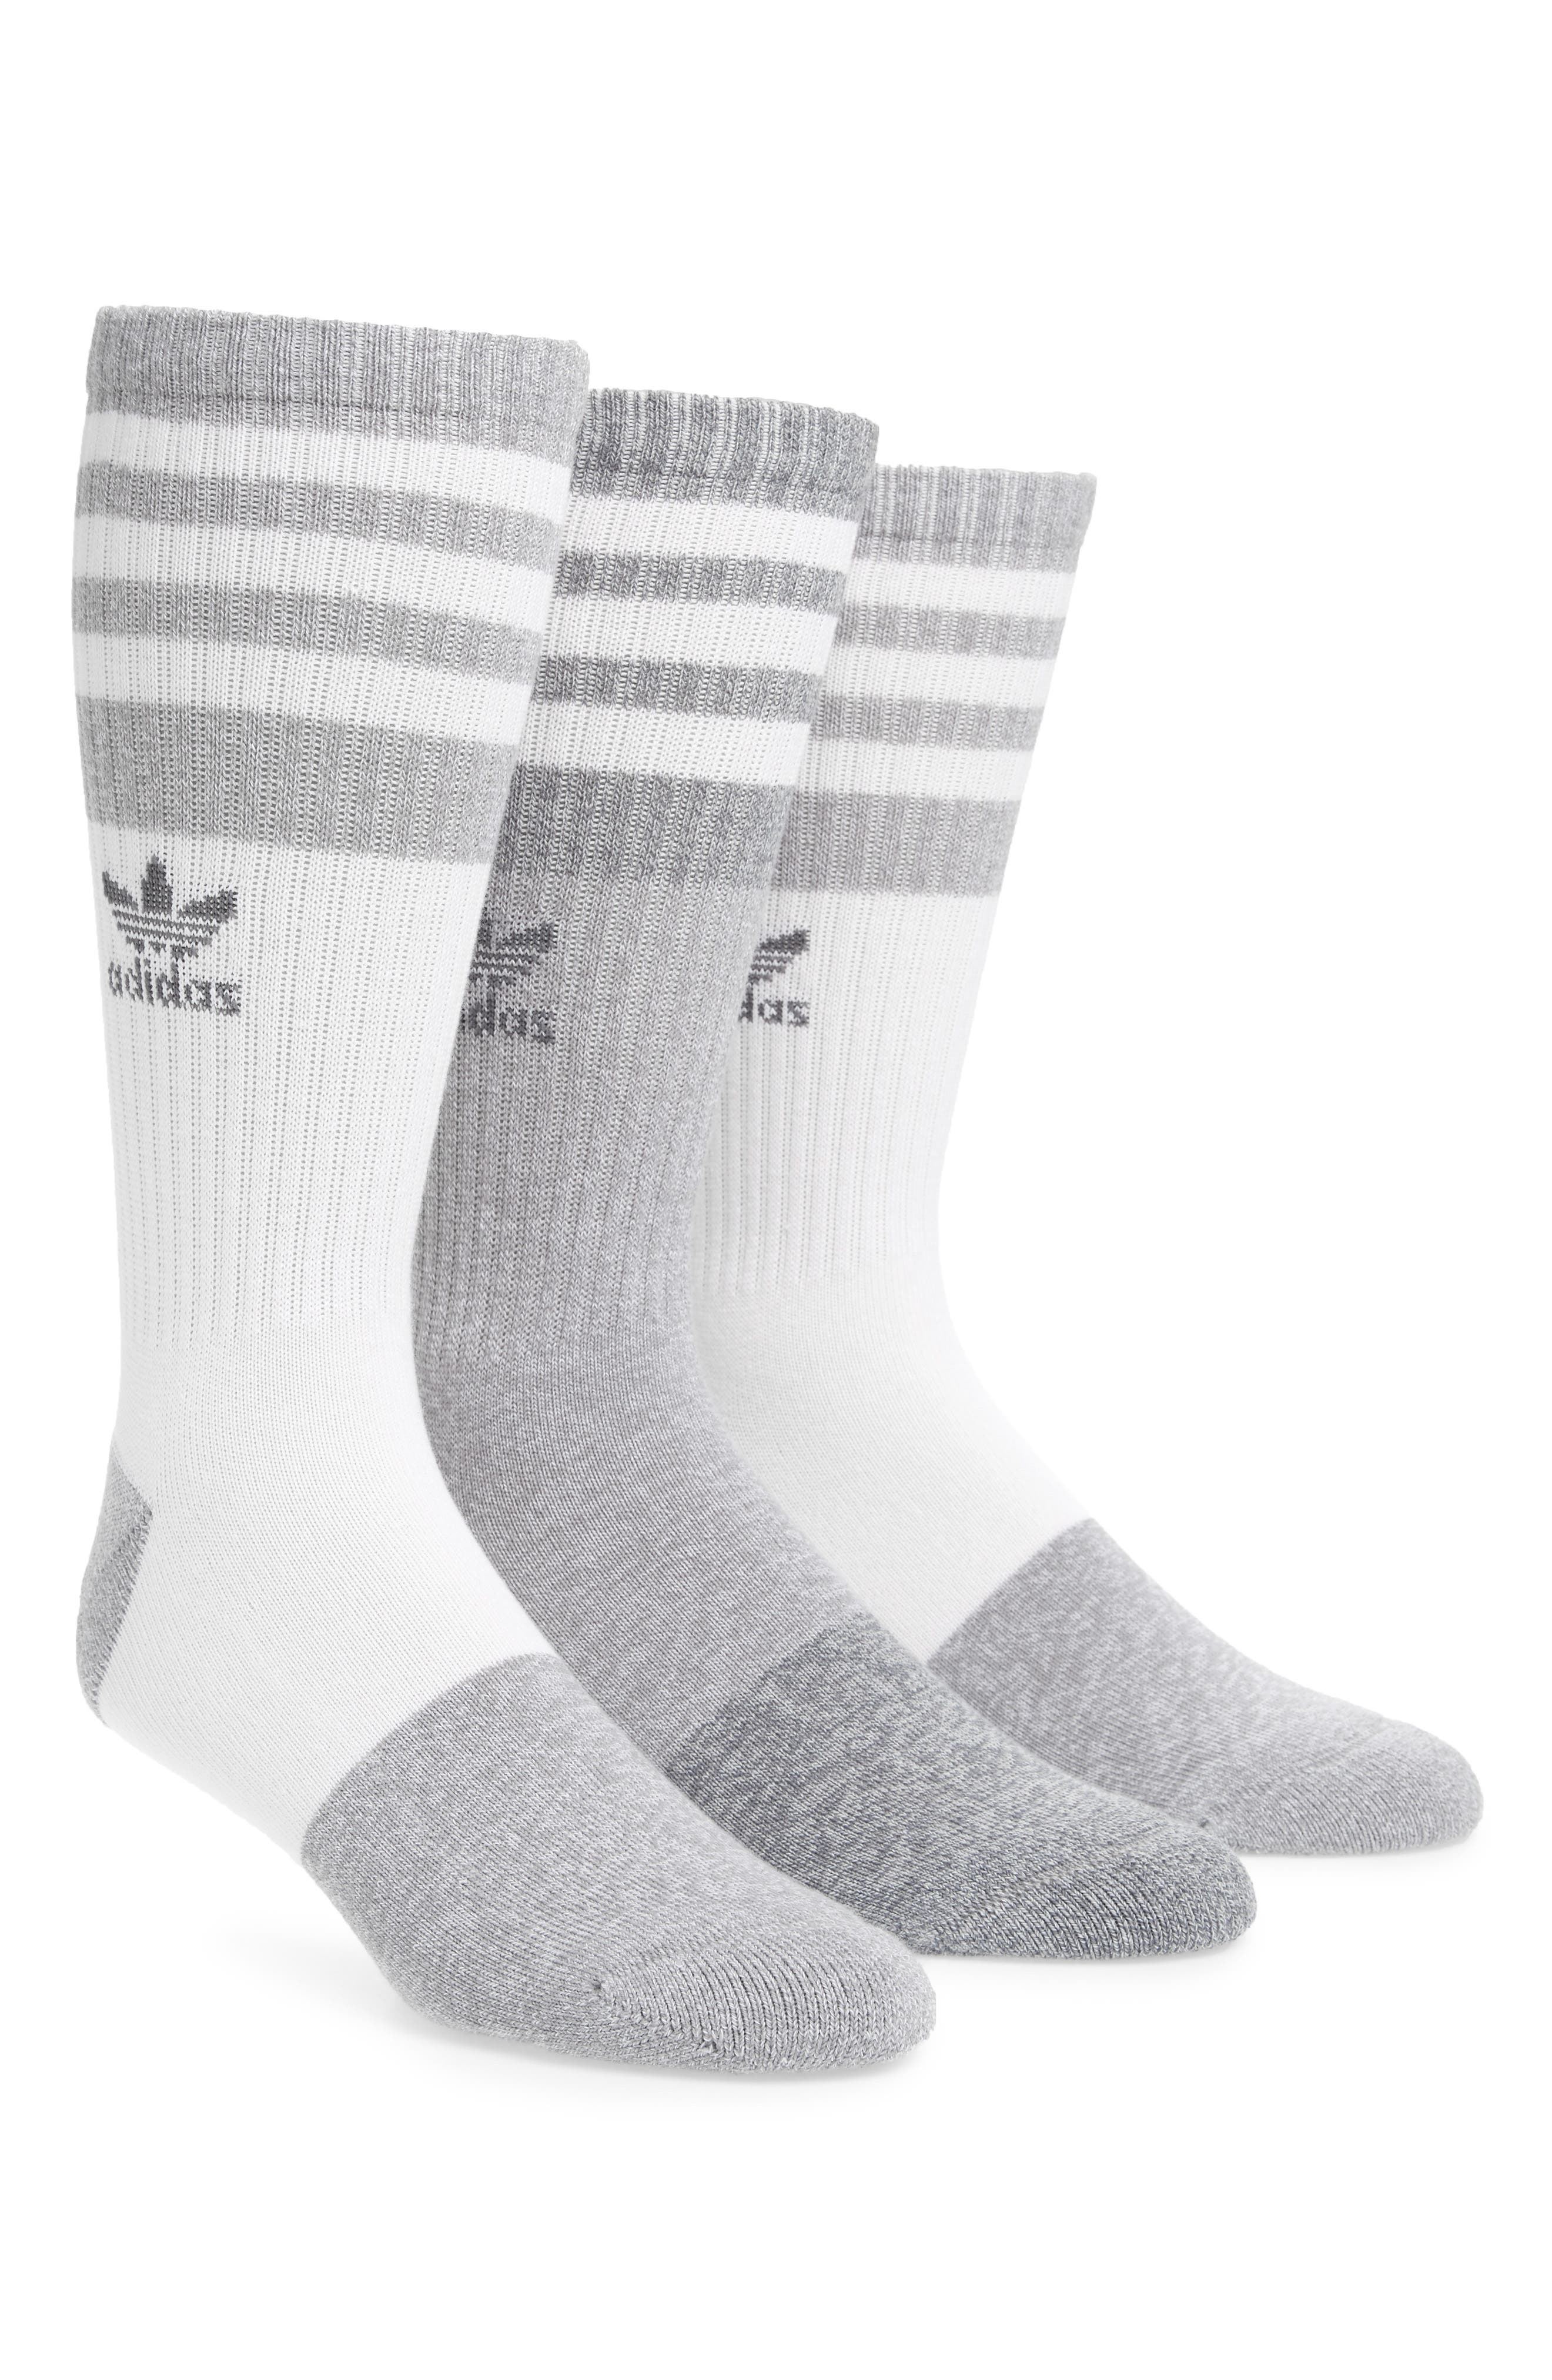 Main Image - adidas Originals 3-Pack Stripe Crew Socks